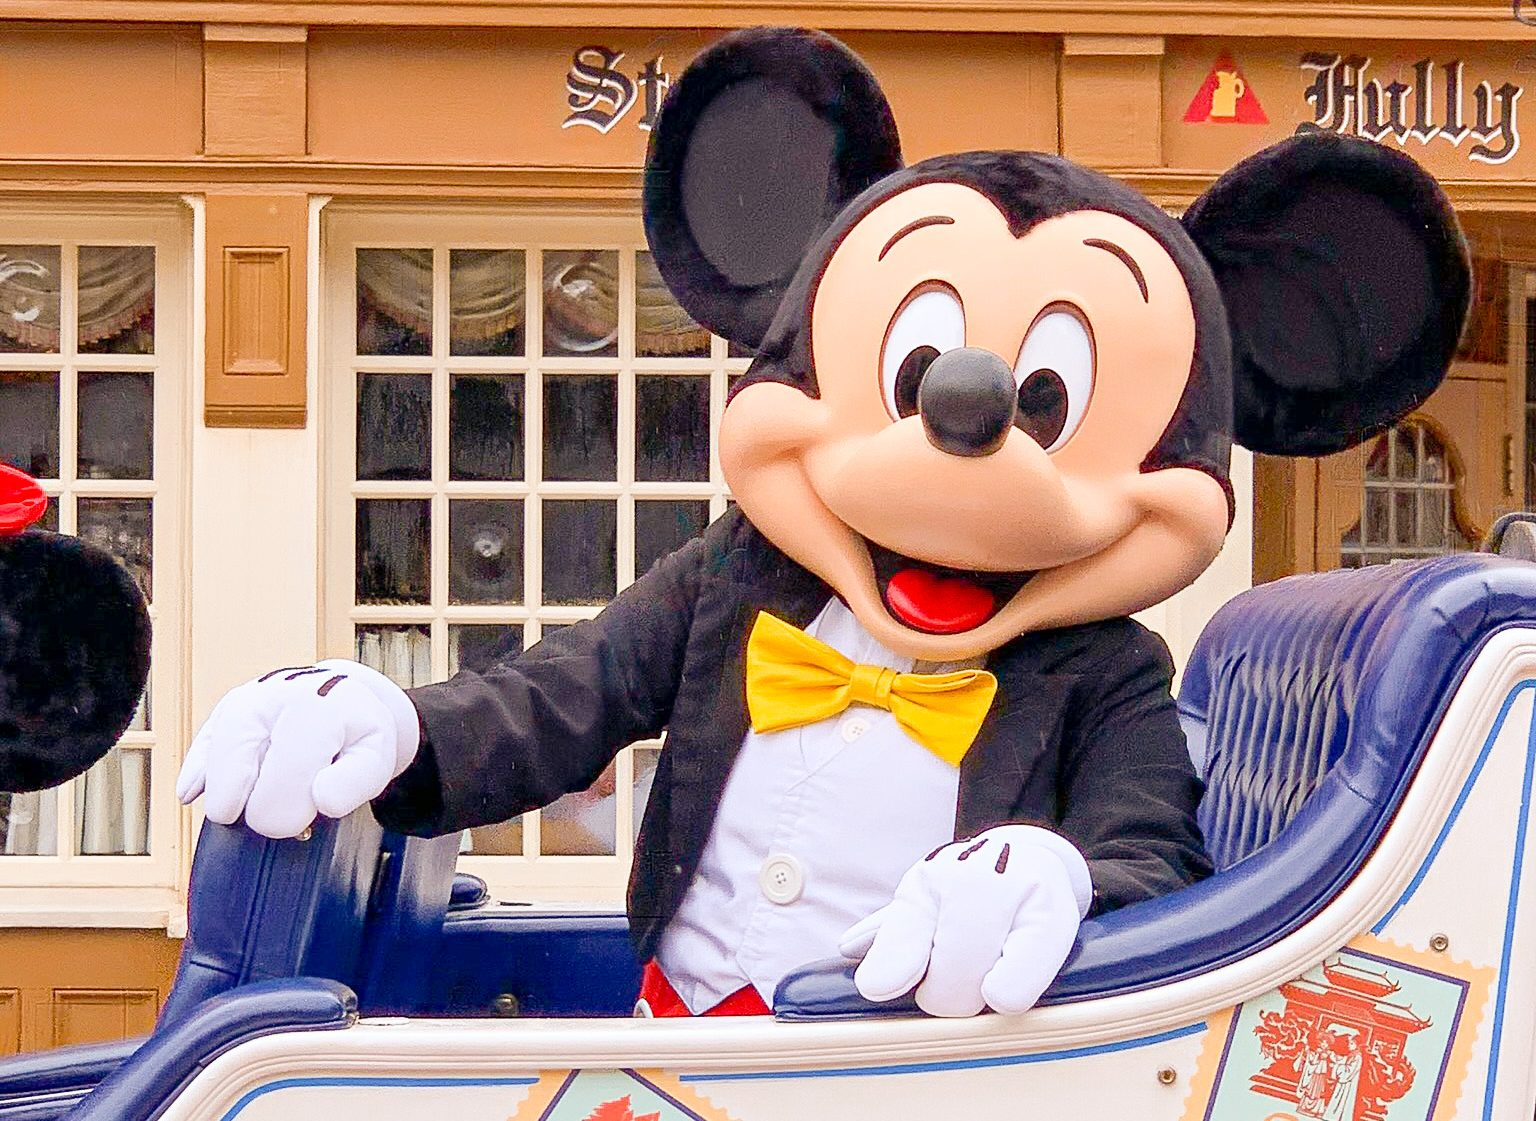 Mickey Mouse in an Epcot cavalcade